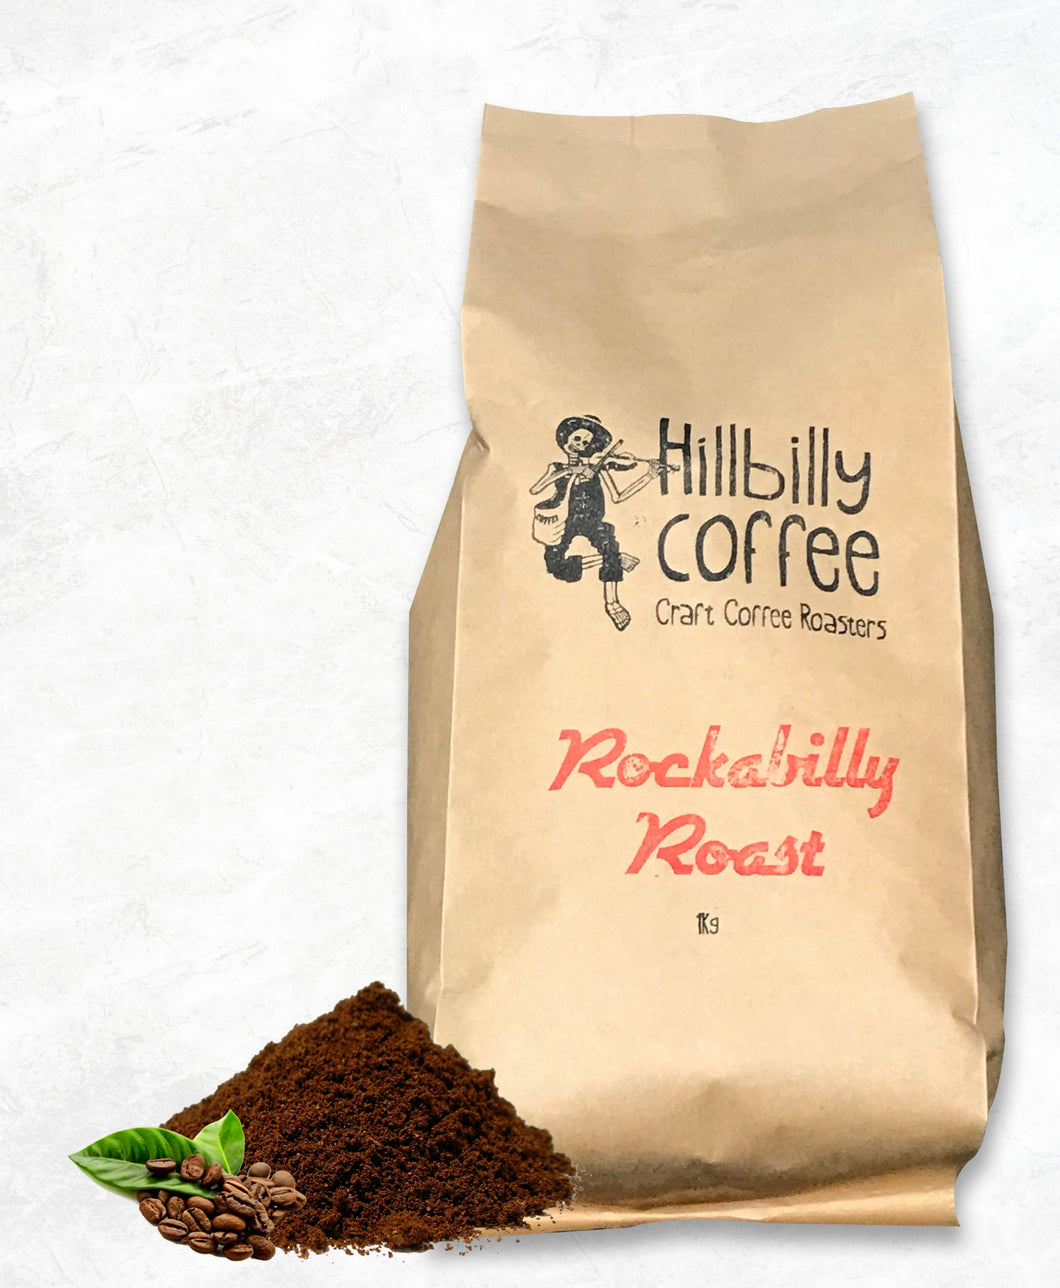 Hillbilly Coffee Rockabilly Roast Coffee Beans 1KG BAG Mornington Peninsula